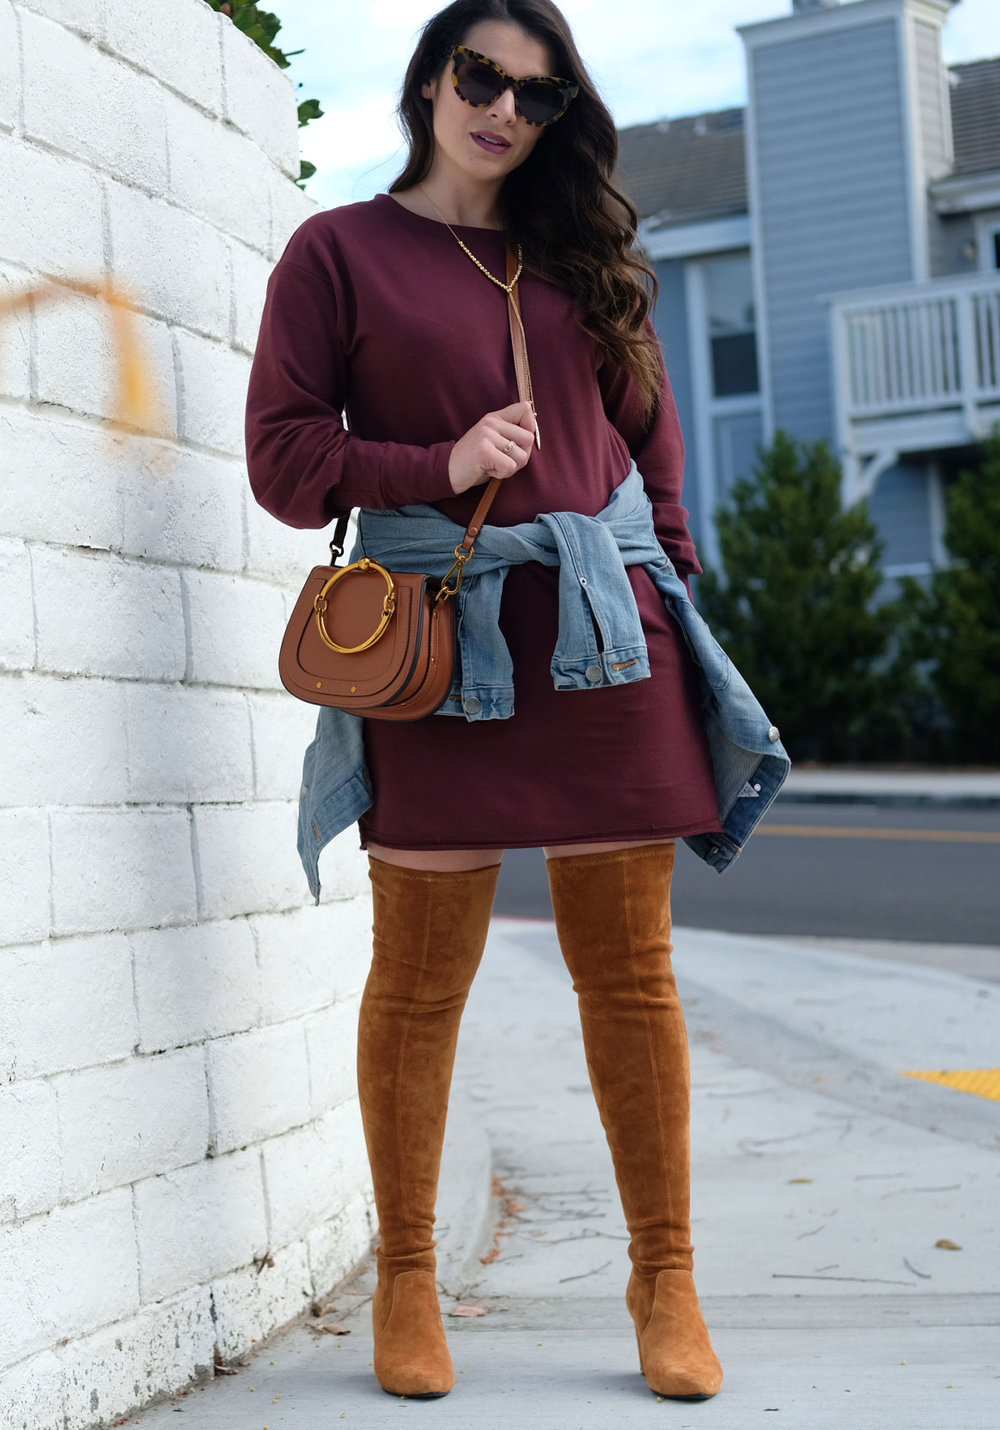 First Trimester Outfit. Sweatshirt dress with denim jacket and over the knee boots.